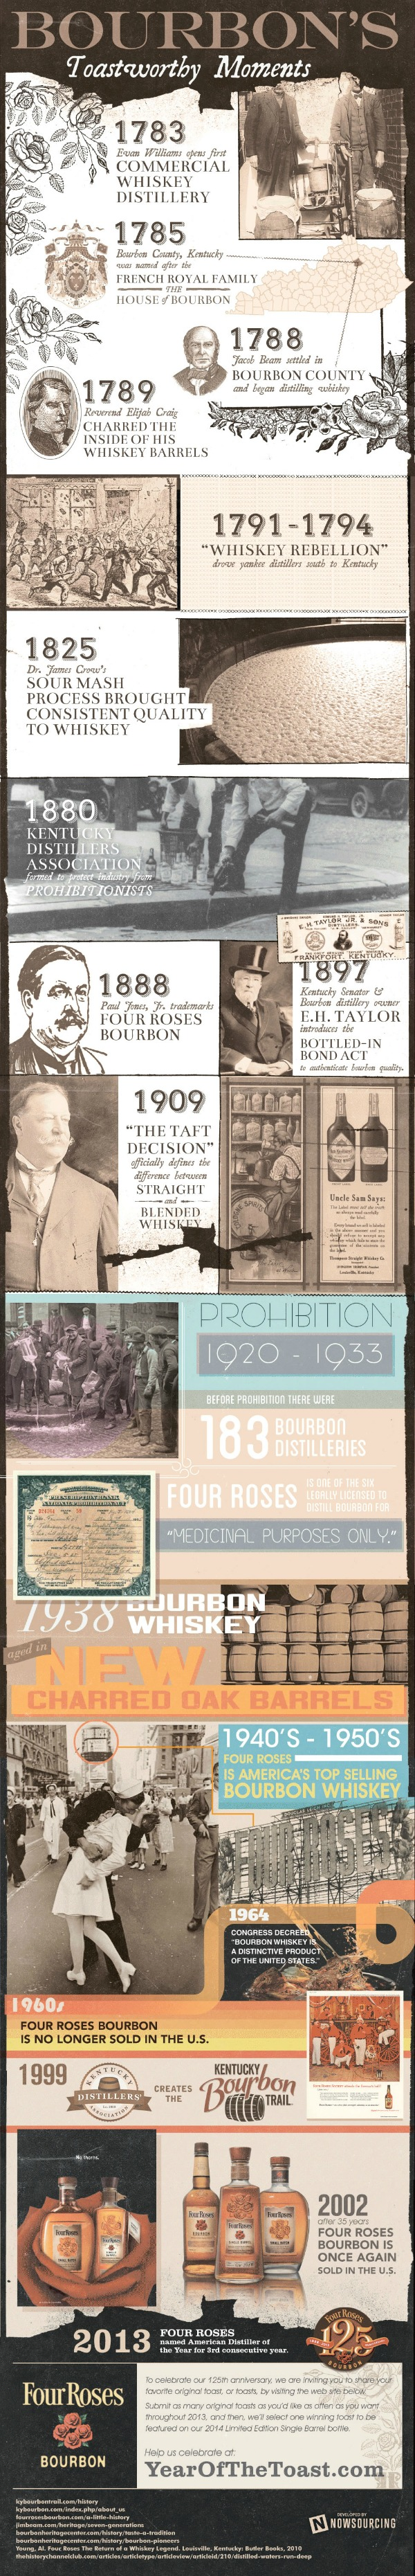 history of bourbon, whiskey, whisky, biofuels